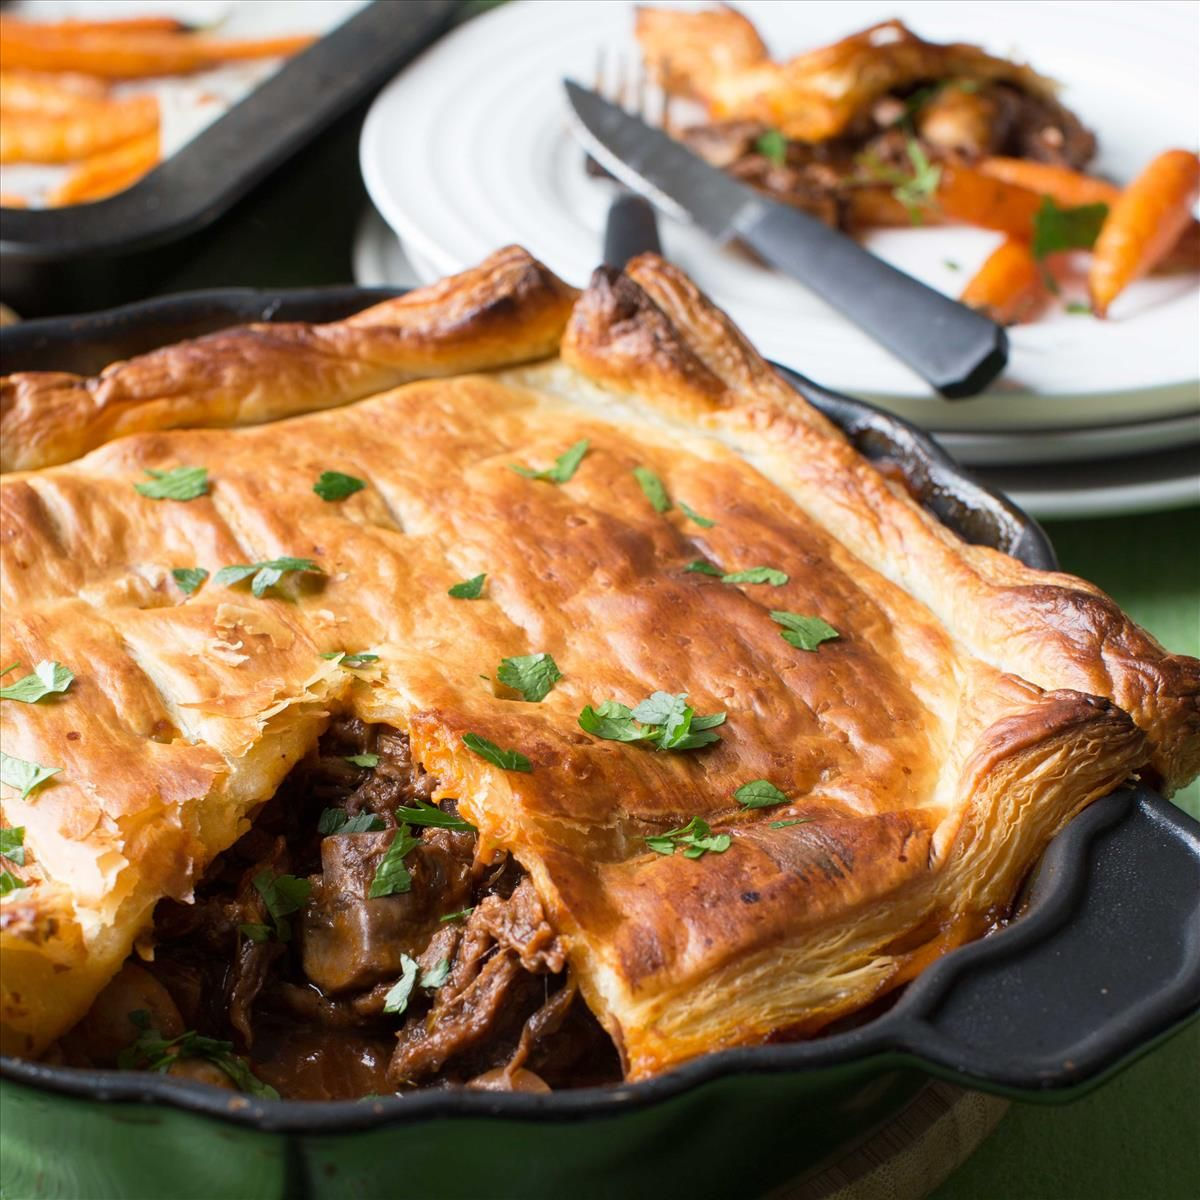 Beef And Mushroom Pie With Puff Pastry And Carrots Nadia Lim